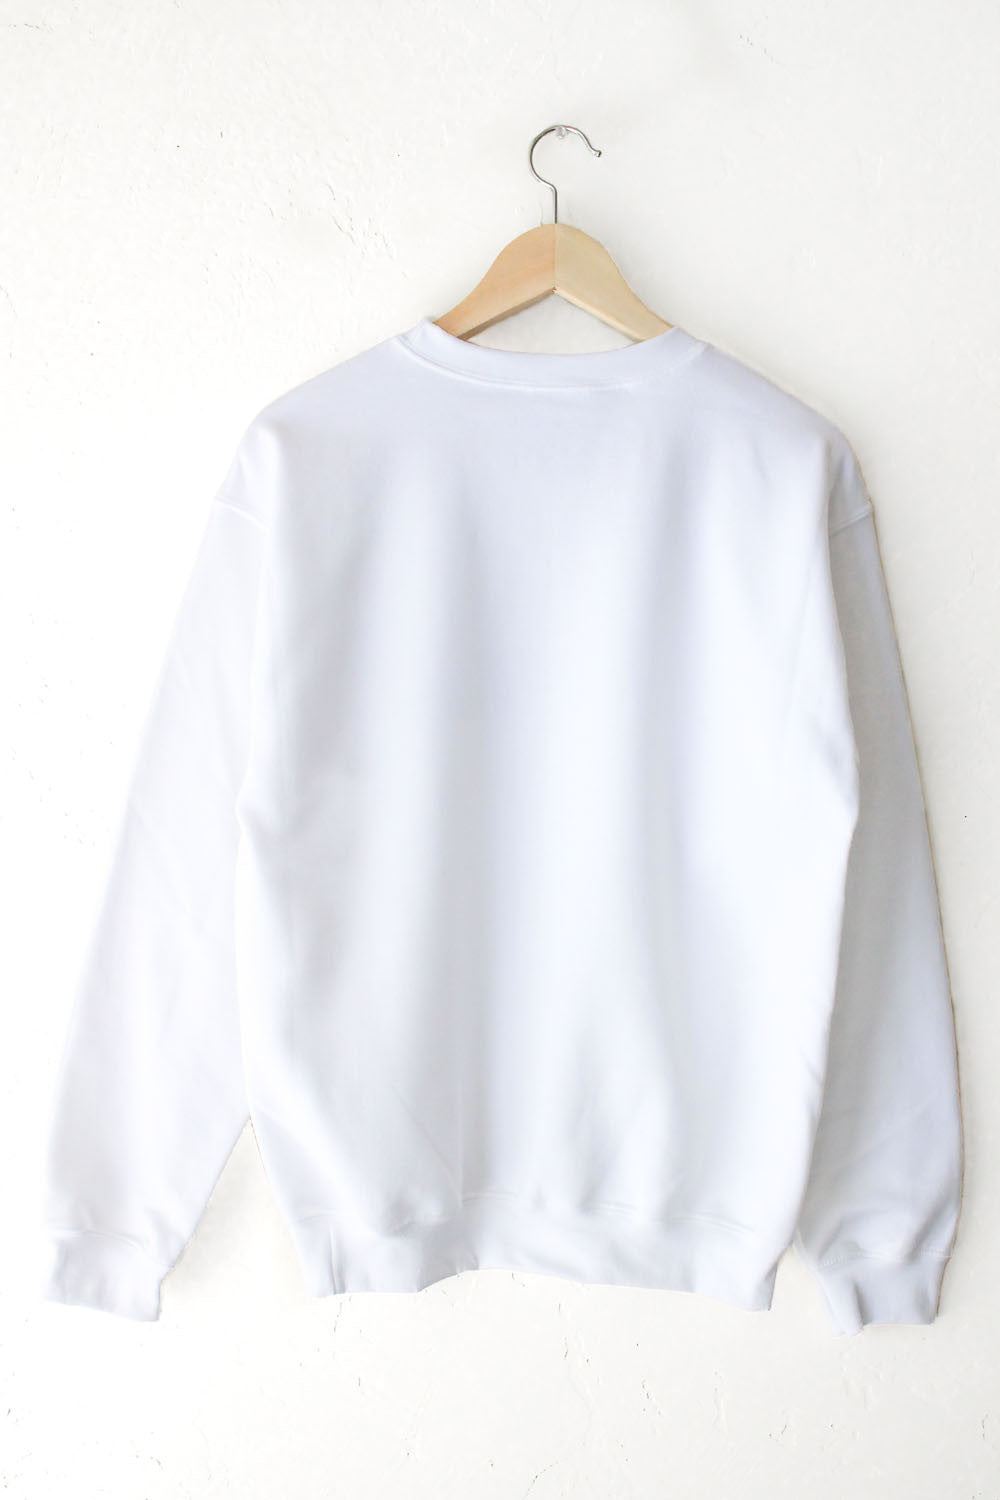 NYCT Clothing California Oversized Sweater - White